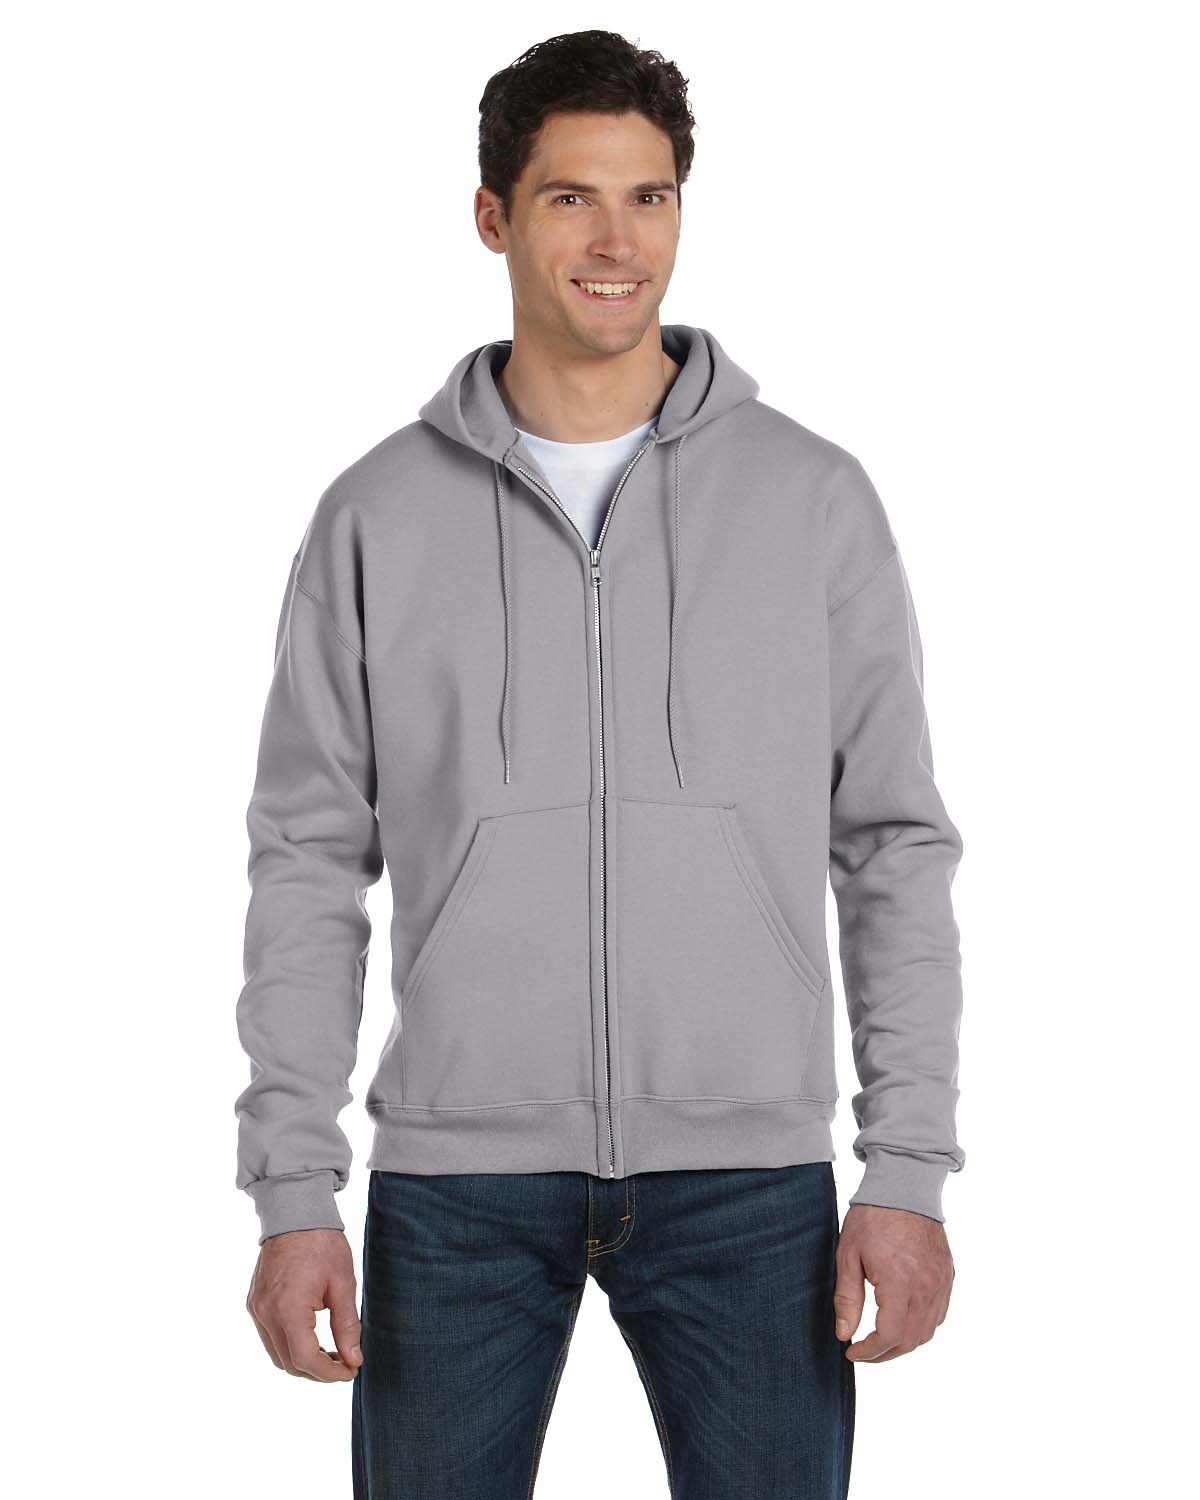 ba21a03a Most Items Include Embroidery. Home / Sweatshirts / Basic / Double Dry Eco  Full-Zip Champion Men's Hoodie